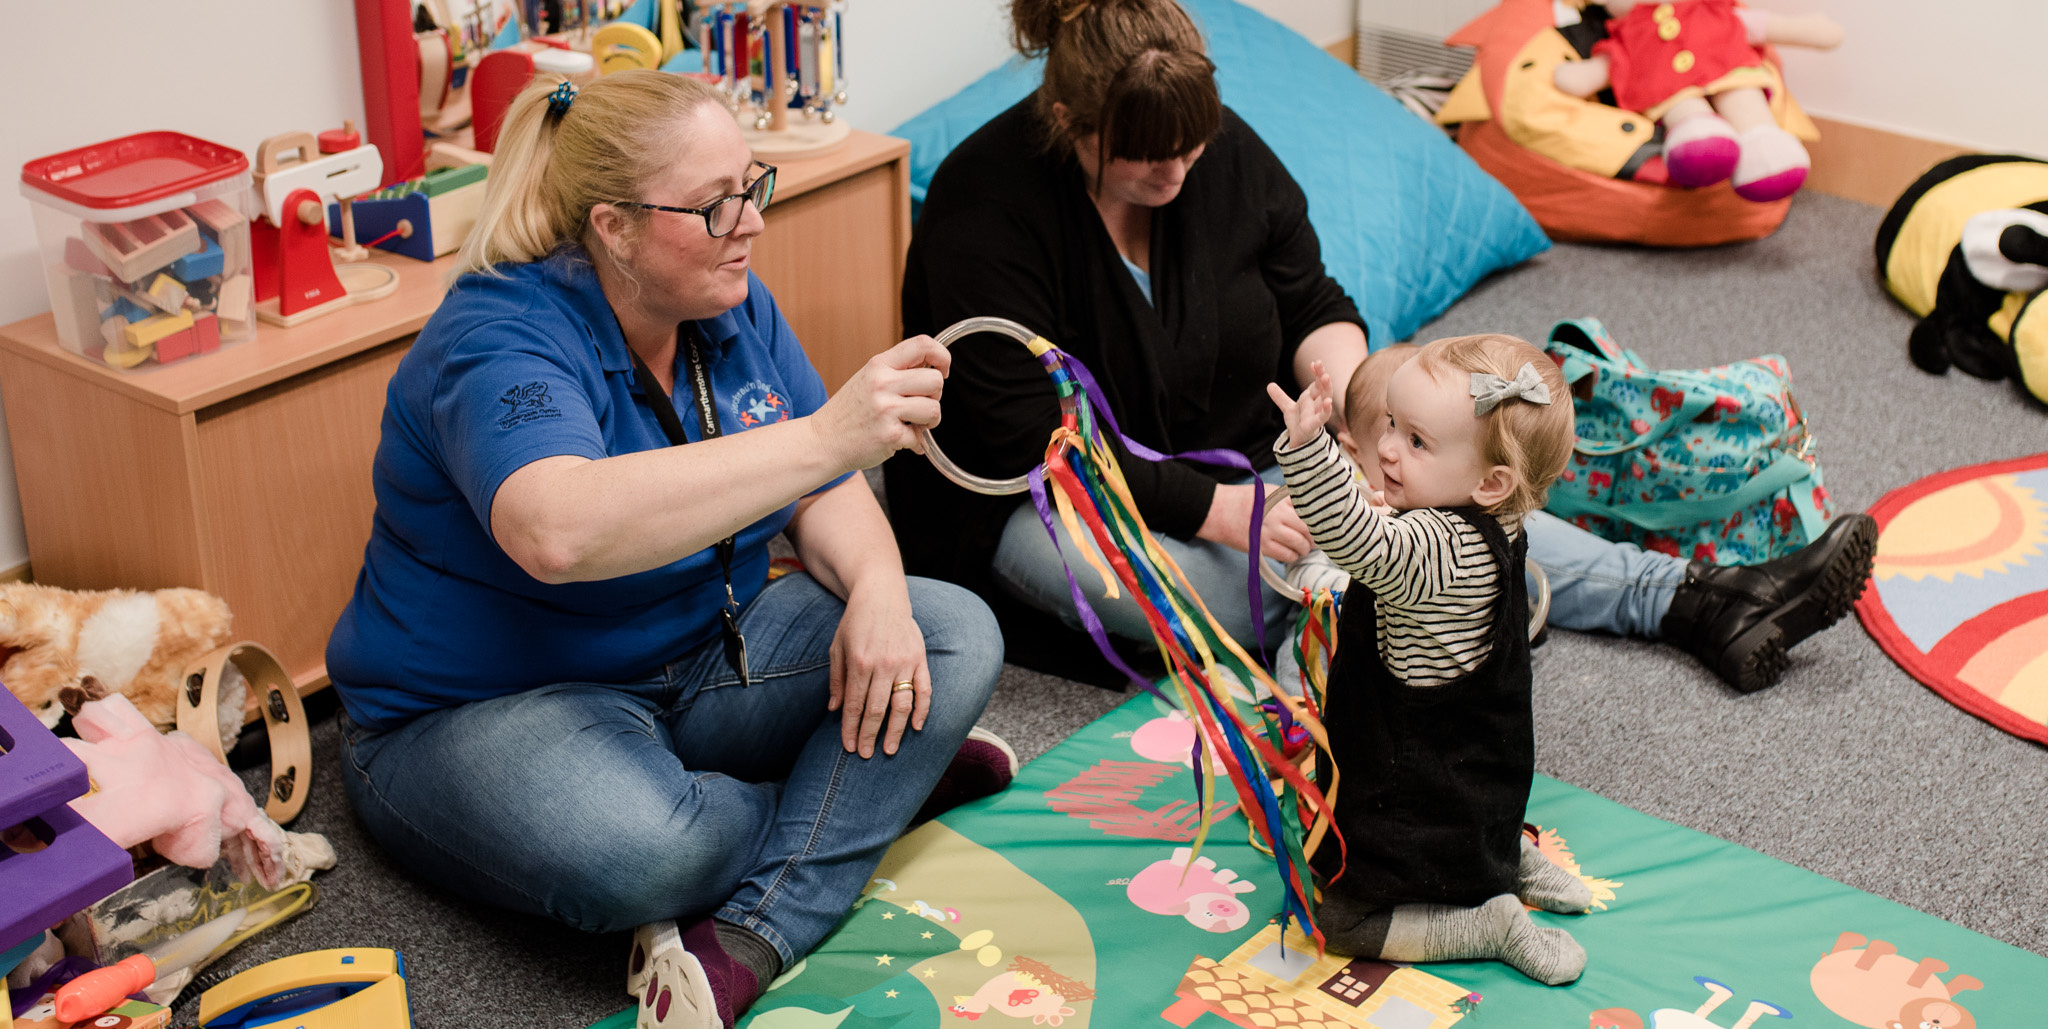 Carers playing with coloured ribbons and toddler